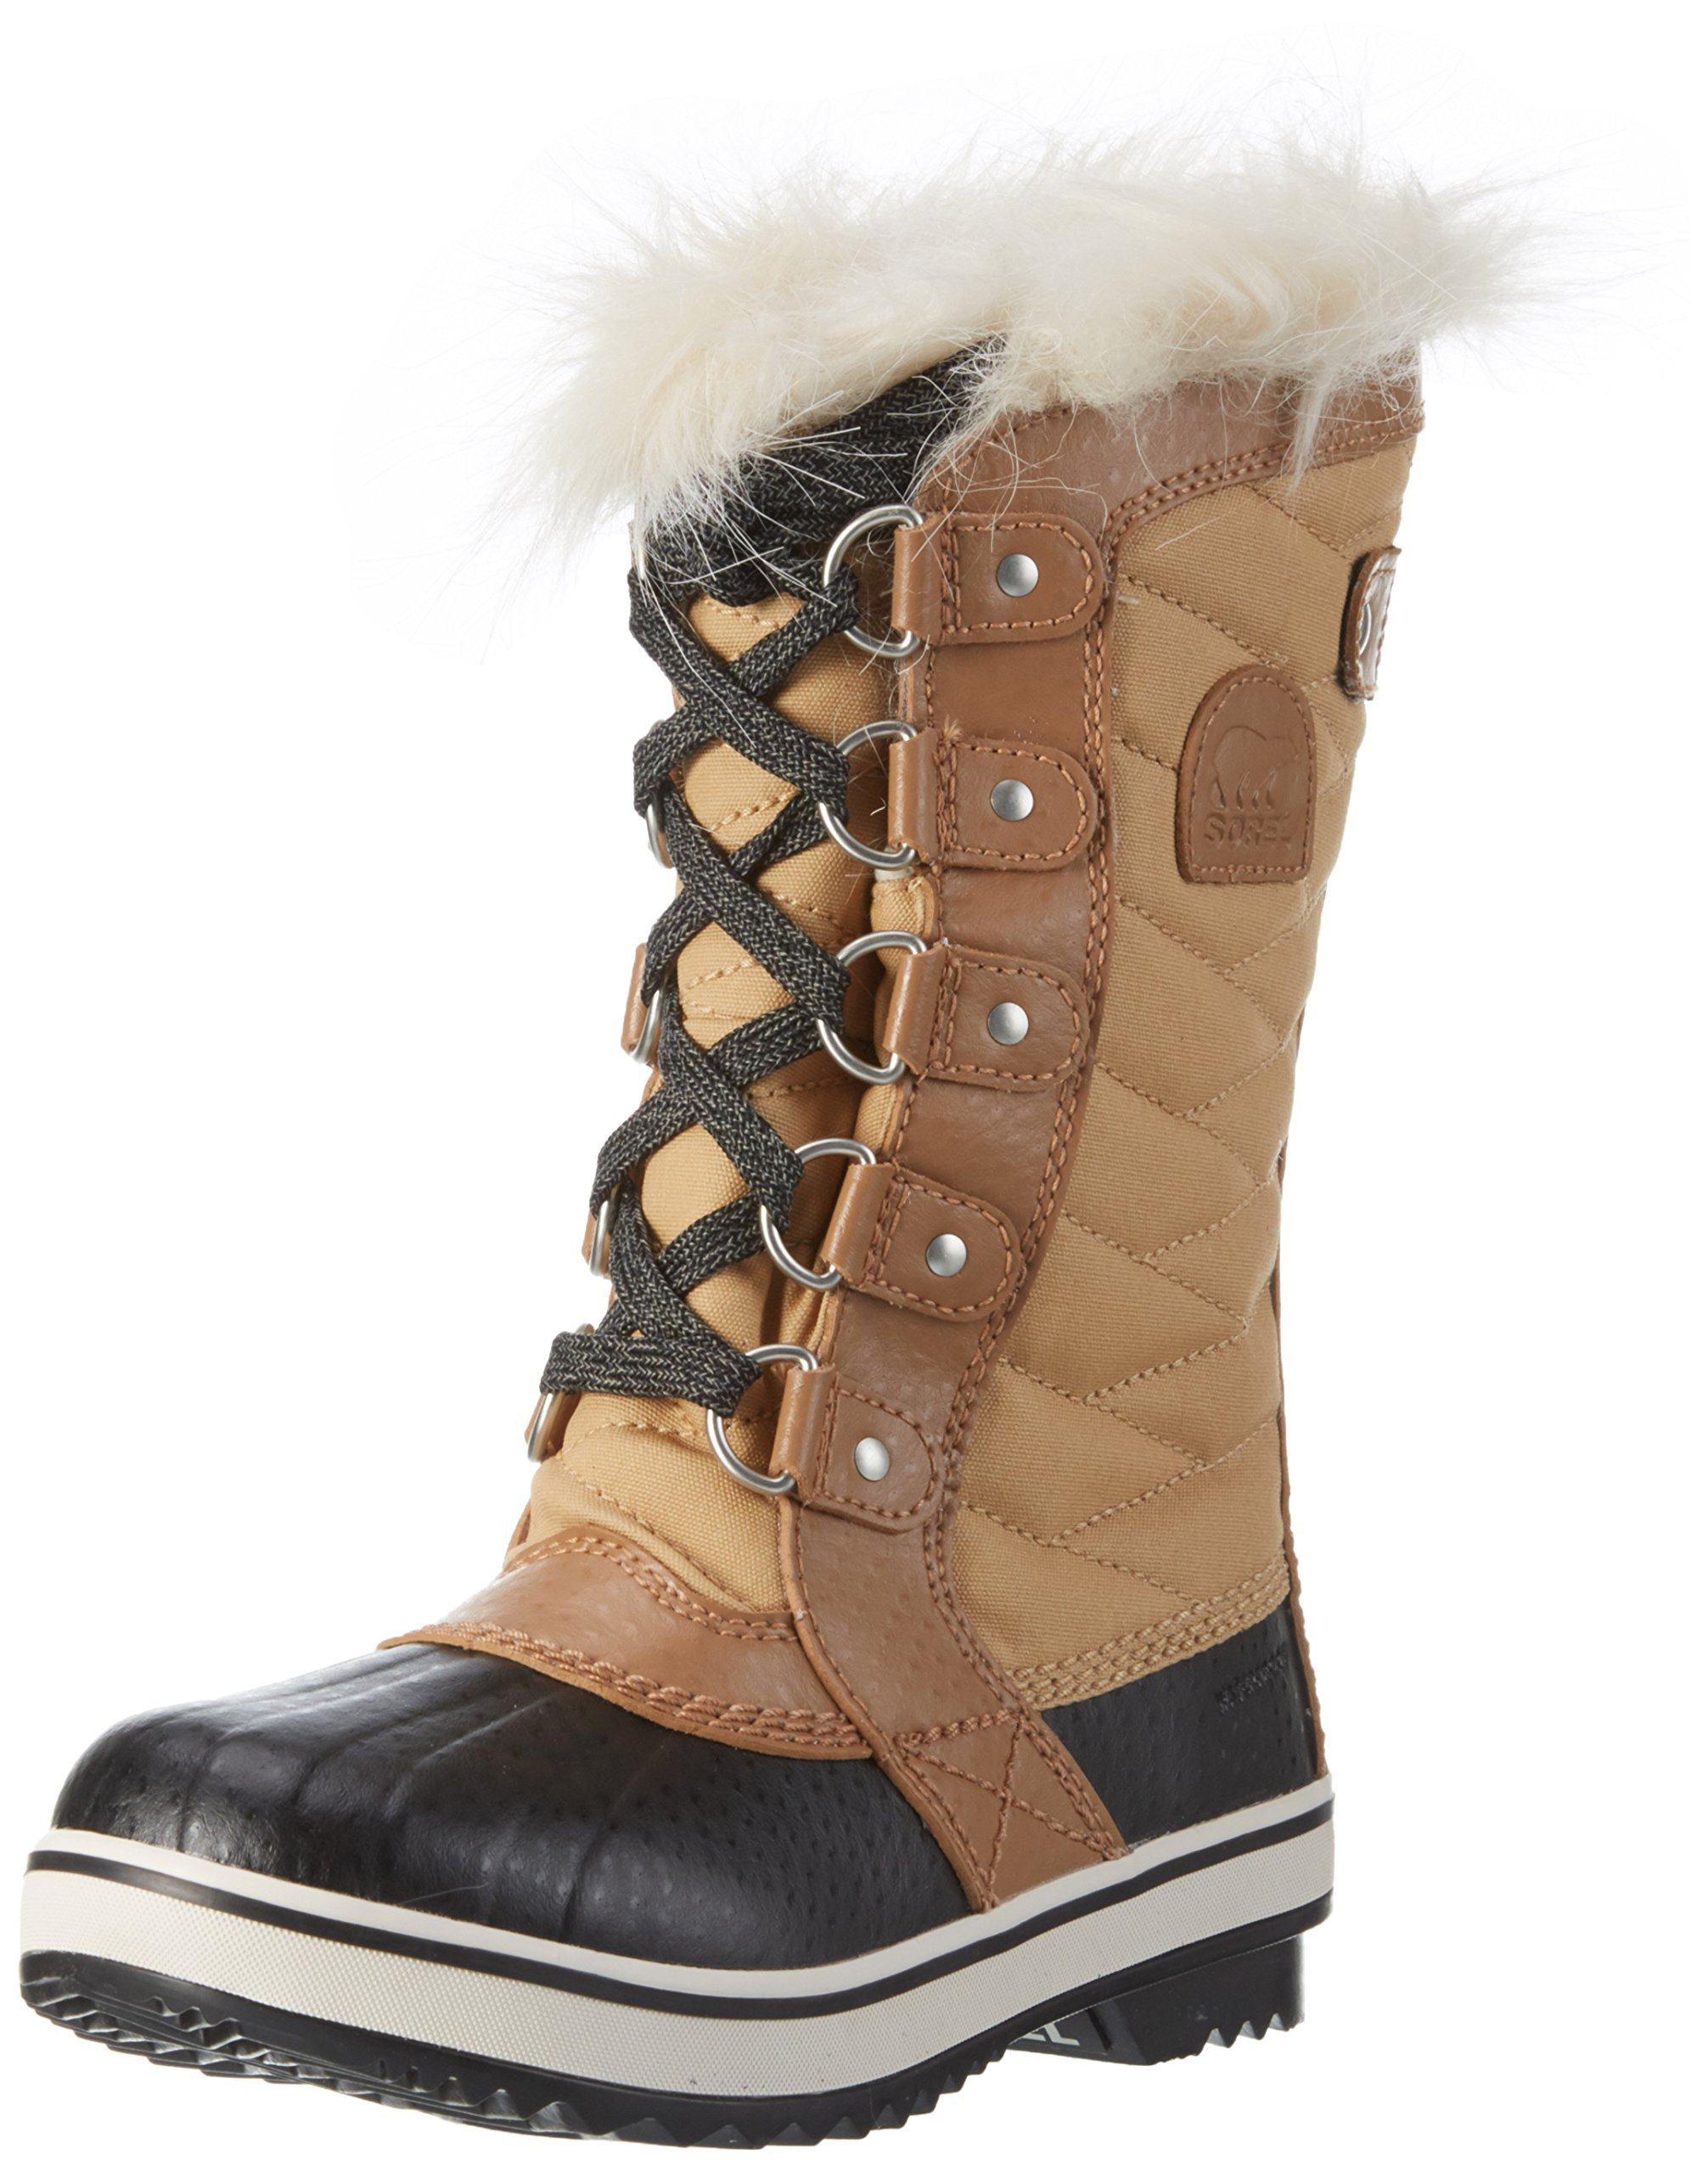 SOREL Youth Tofino II Boot, Curry/Elk Size 5